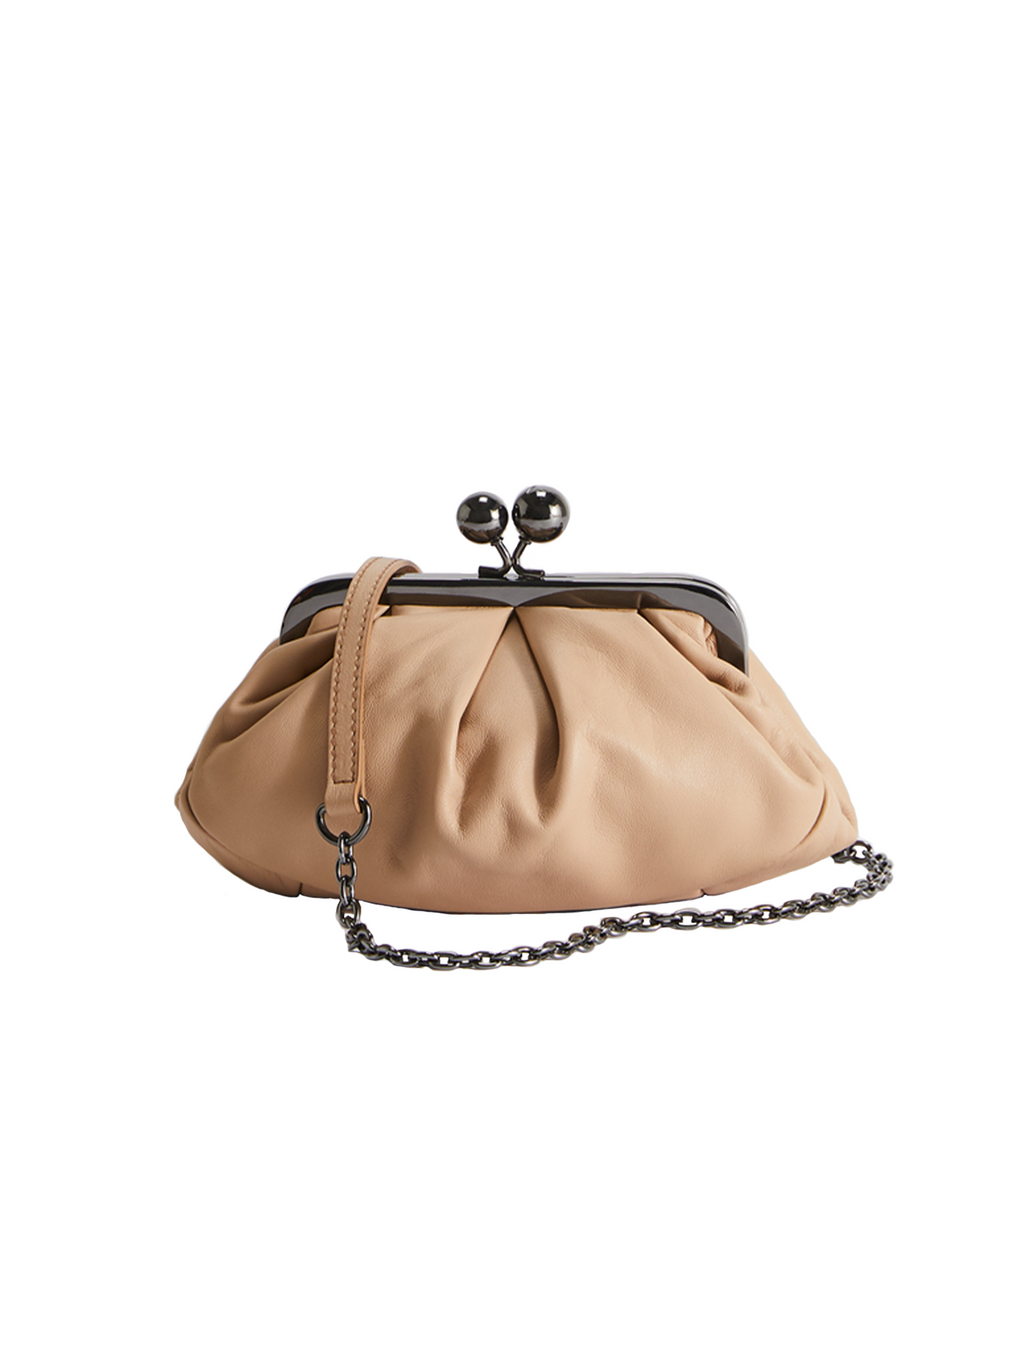 Max Mara Weekend Prati Pasticcino Nappa Leather Bag